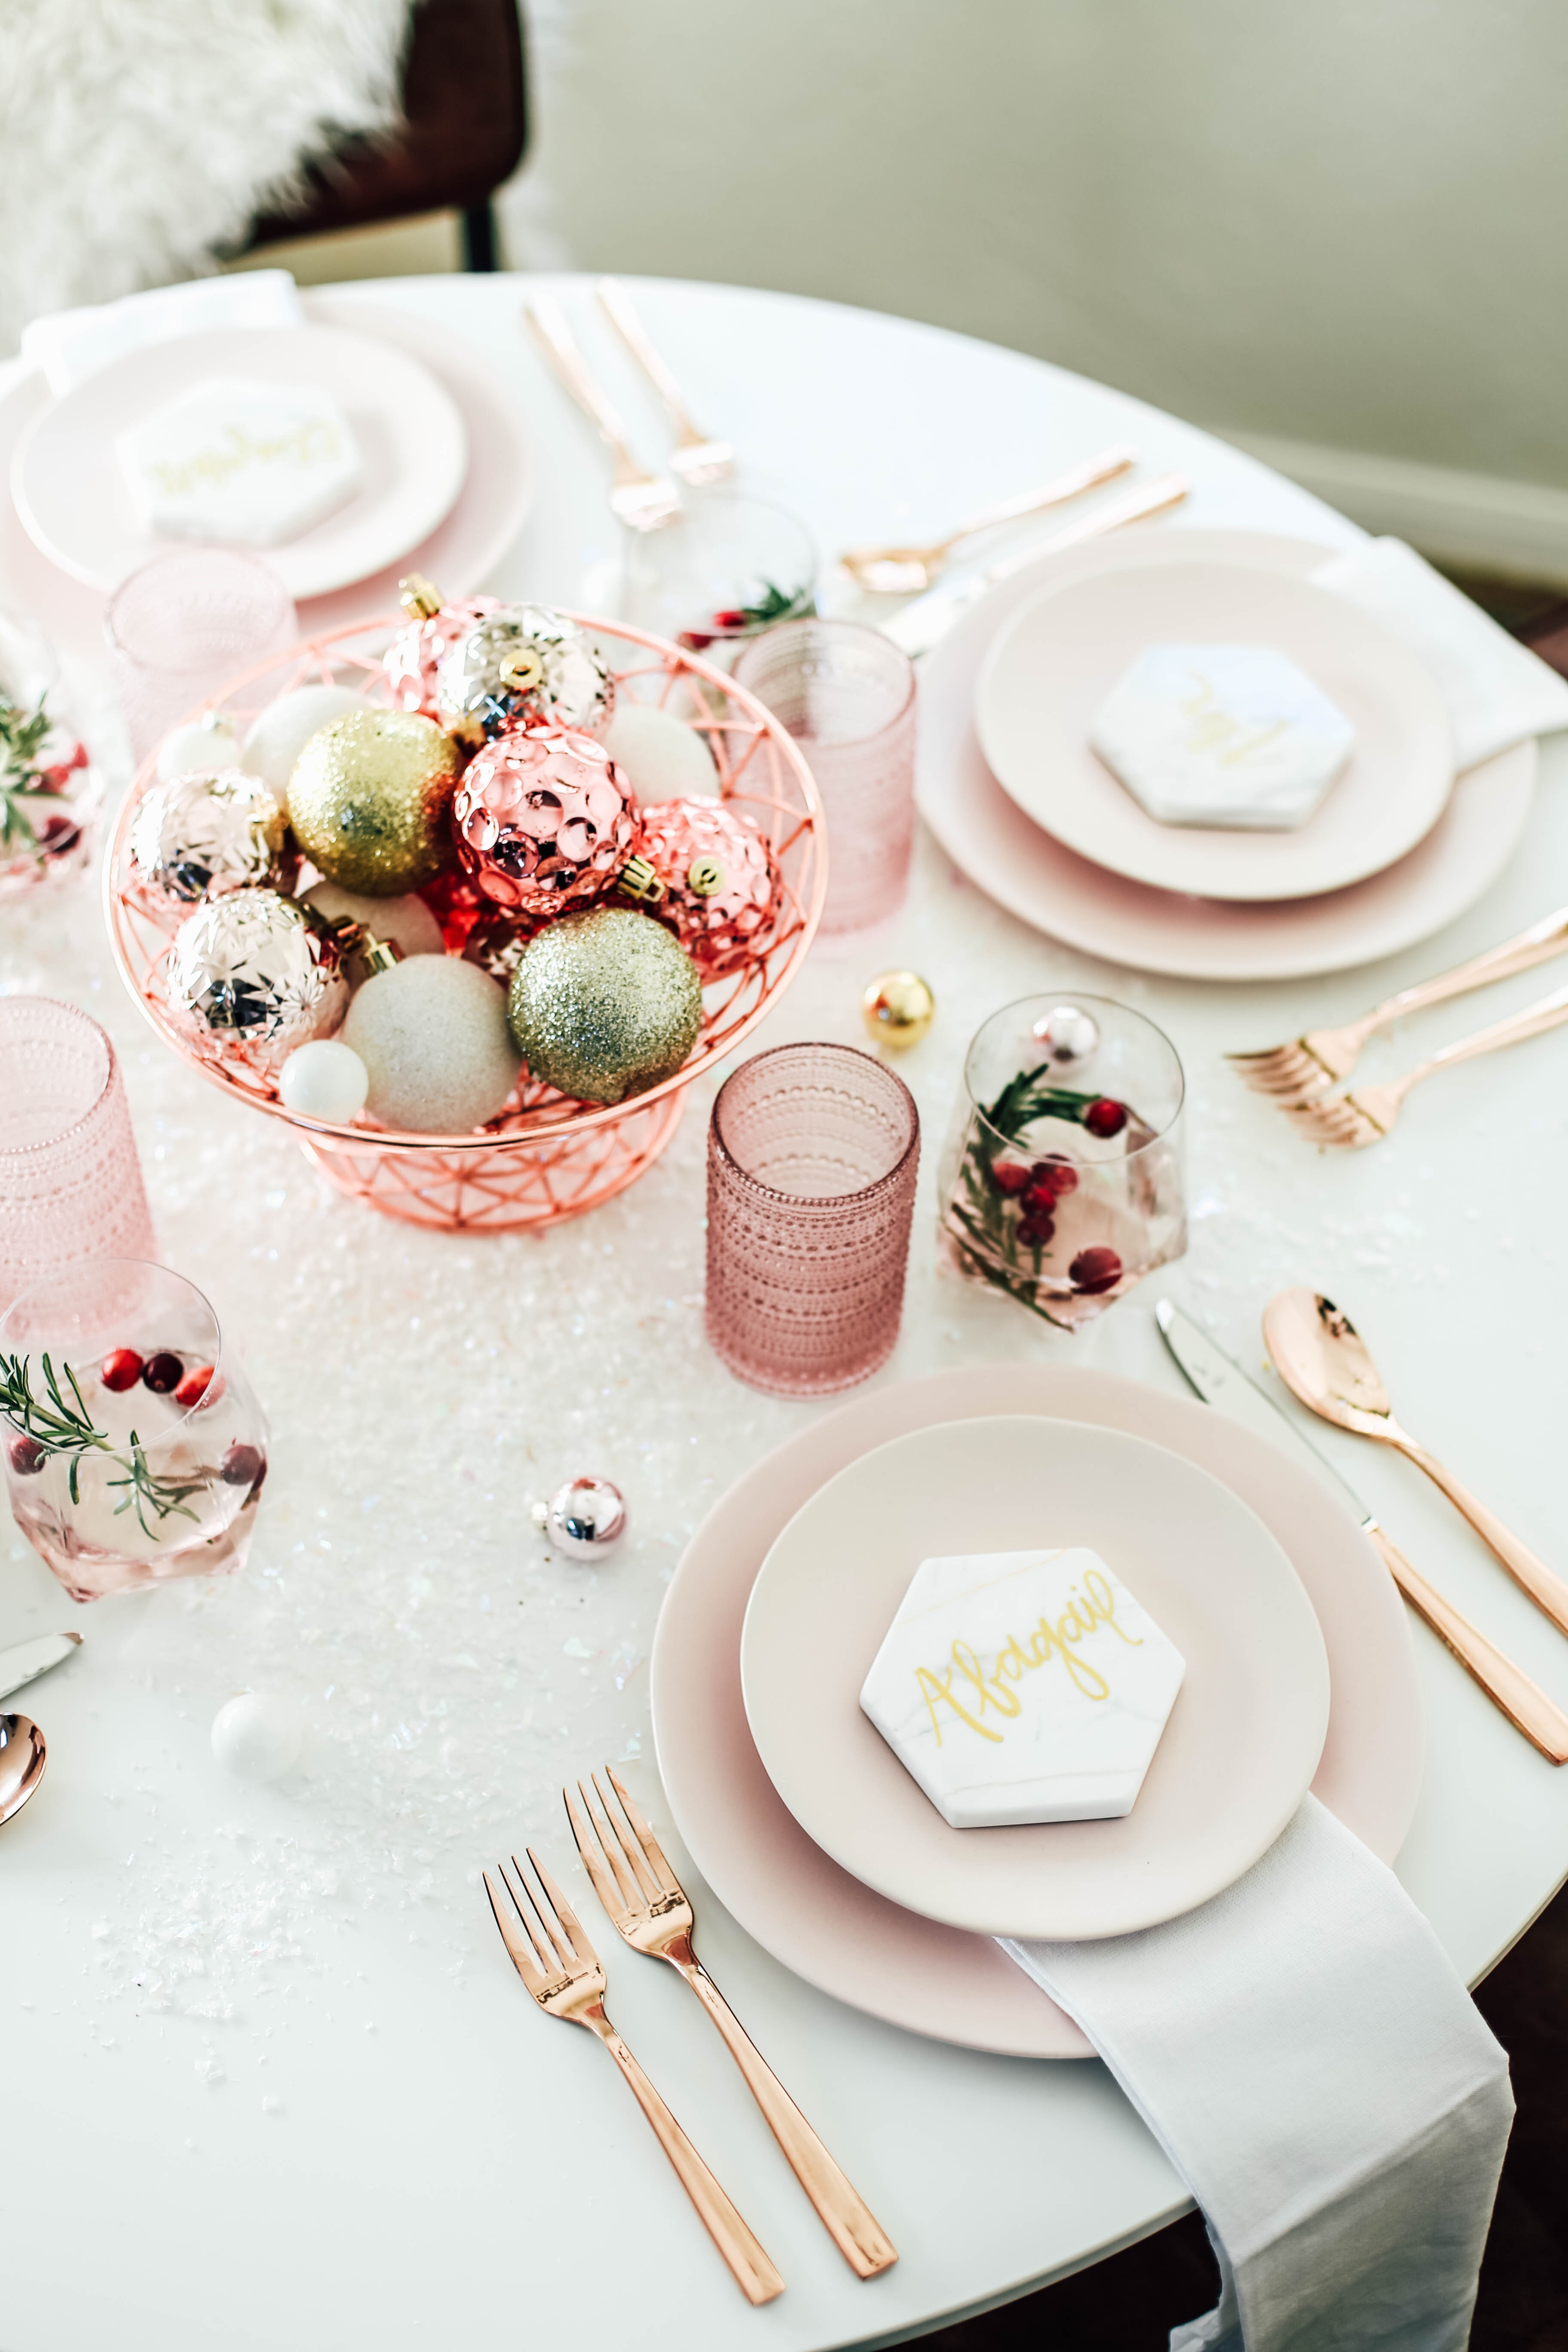 Millennial Pink Table Setting 21 1